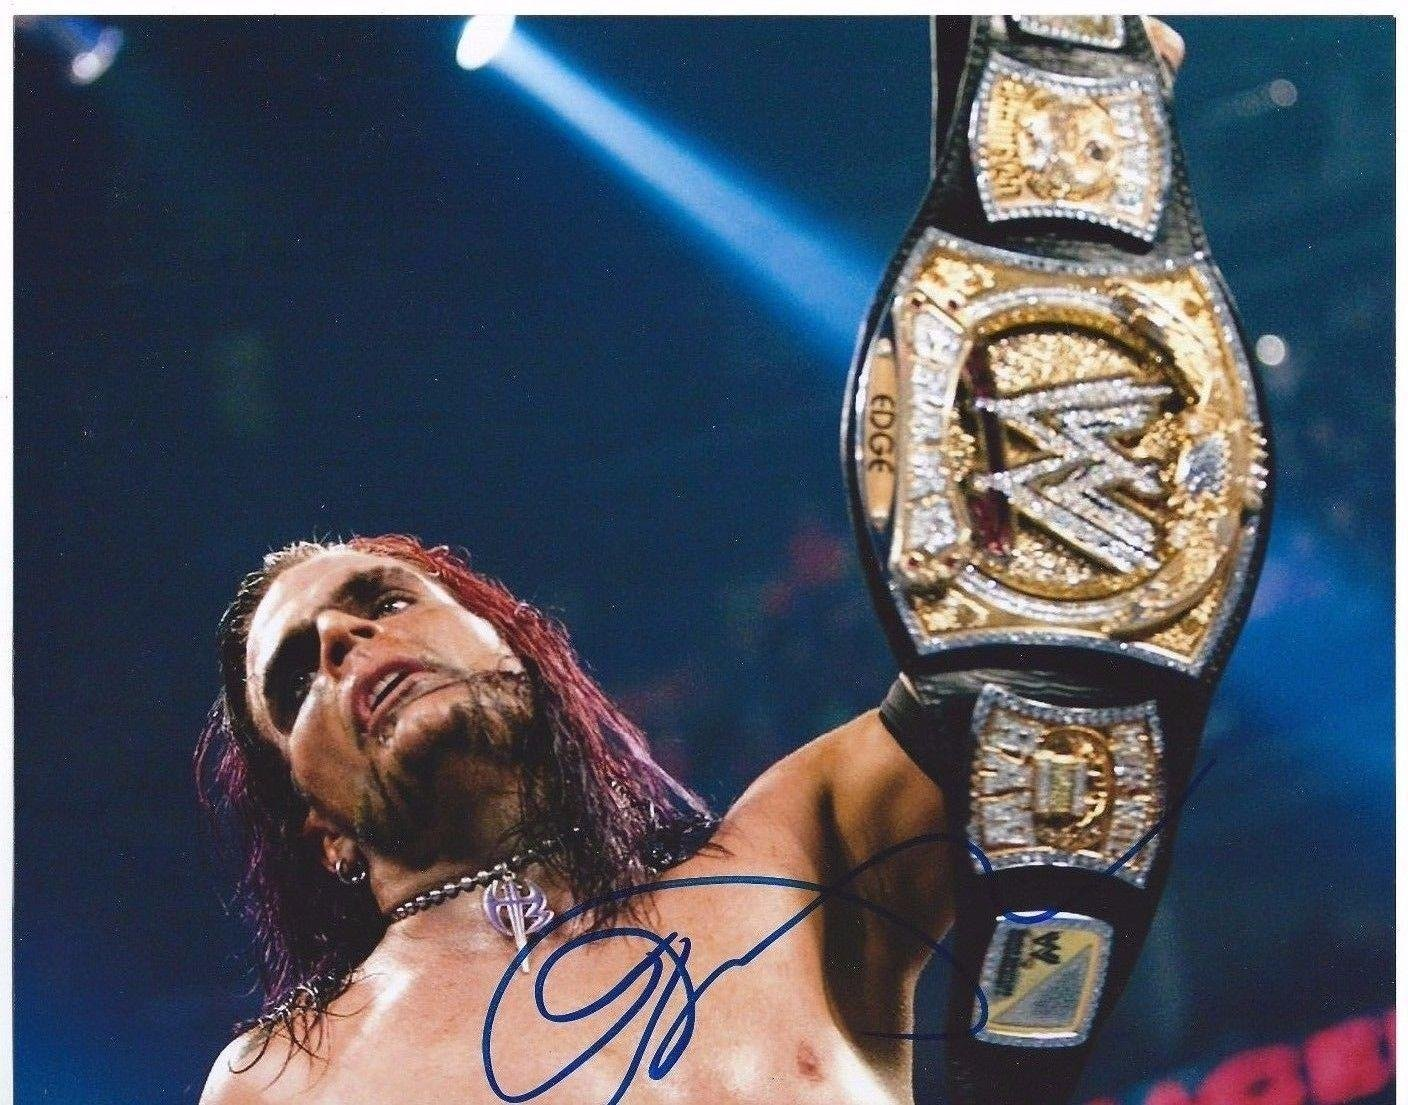 Wwe tna jeff hardy autographed 11x14 photo auto signed autograph - Jeff Hardy Signed Wwe Champion 8x10 Photo Autographed Wrestling Photos At Amazon S Sports Collectibles Store